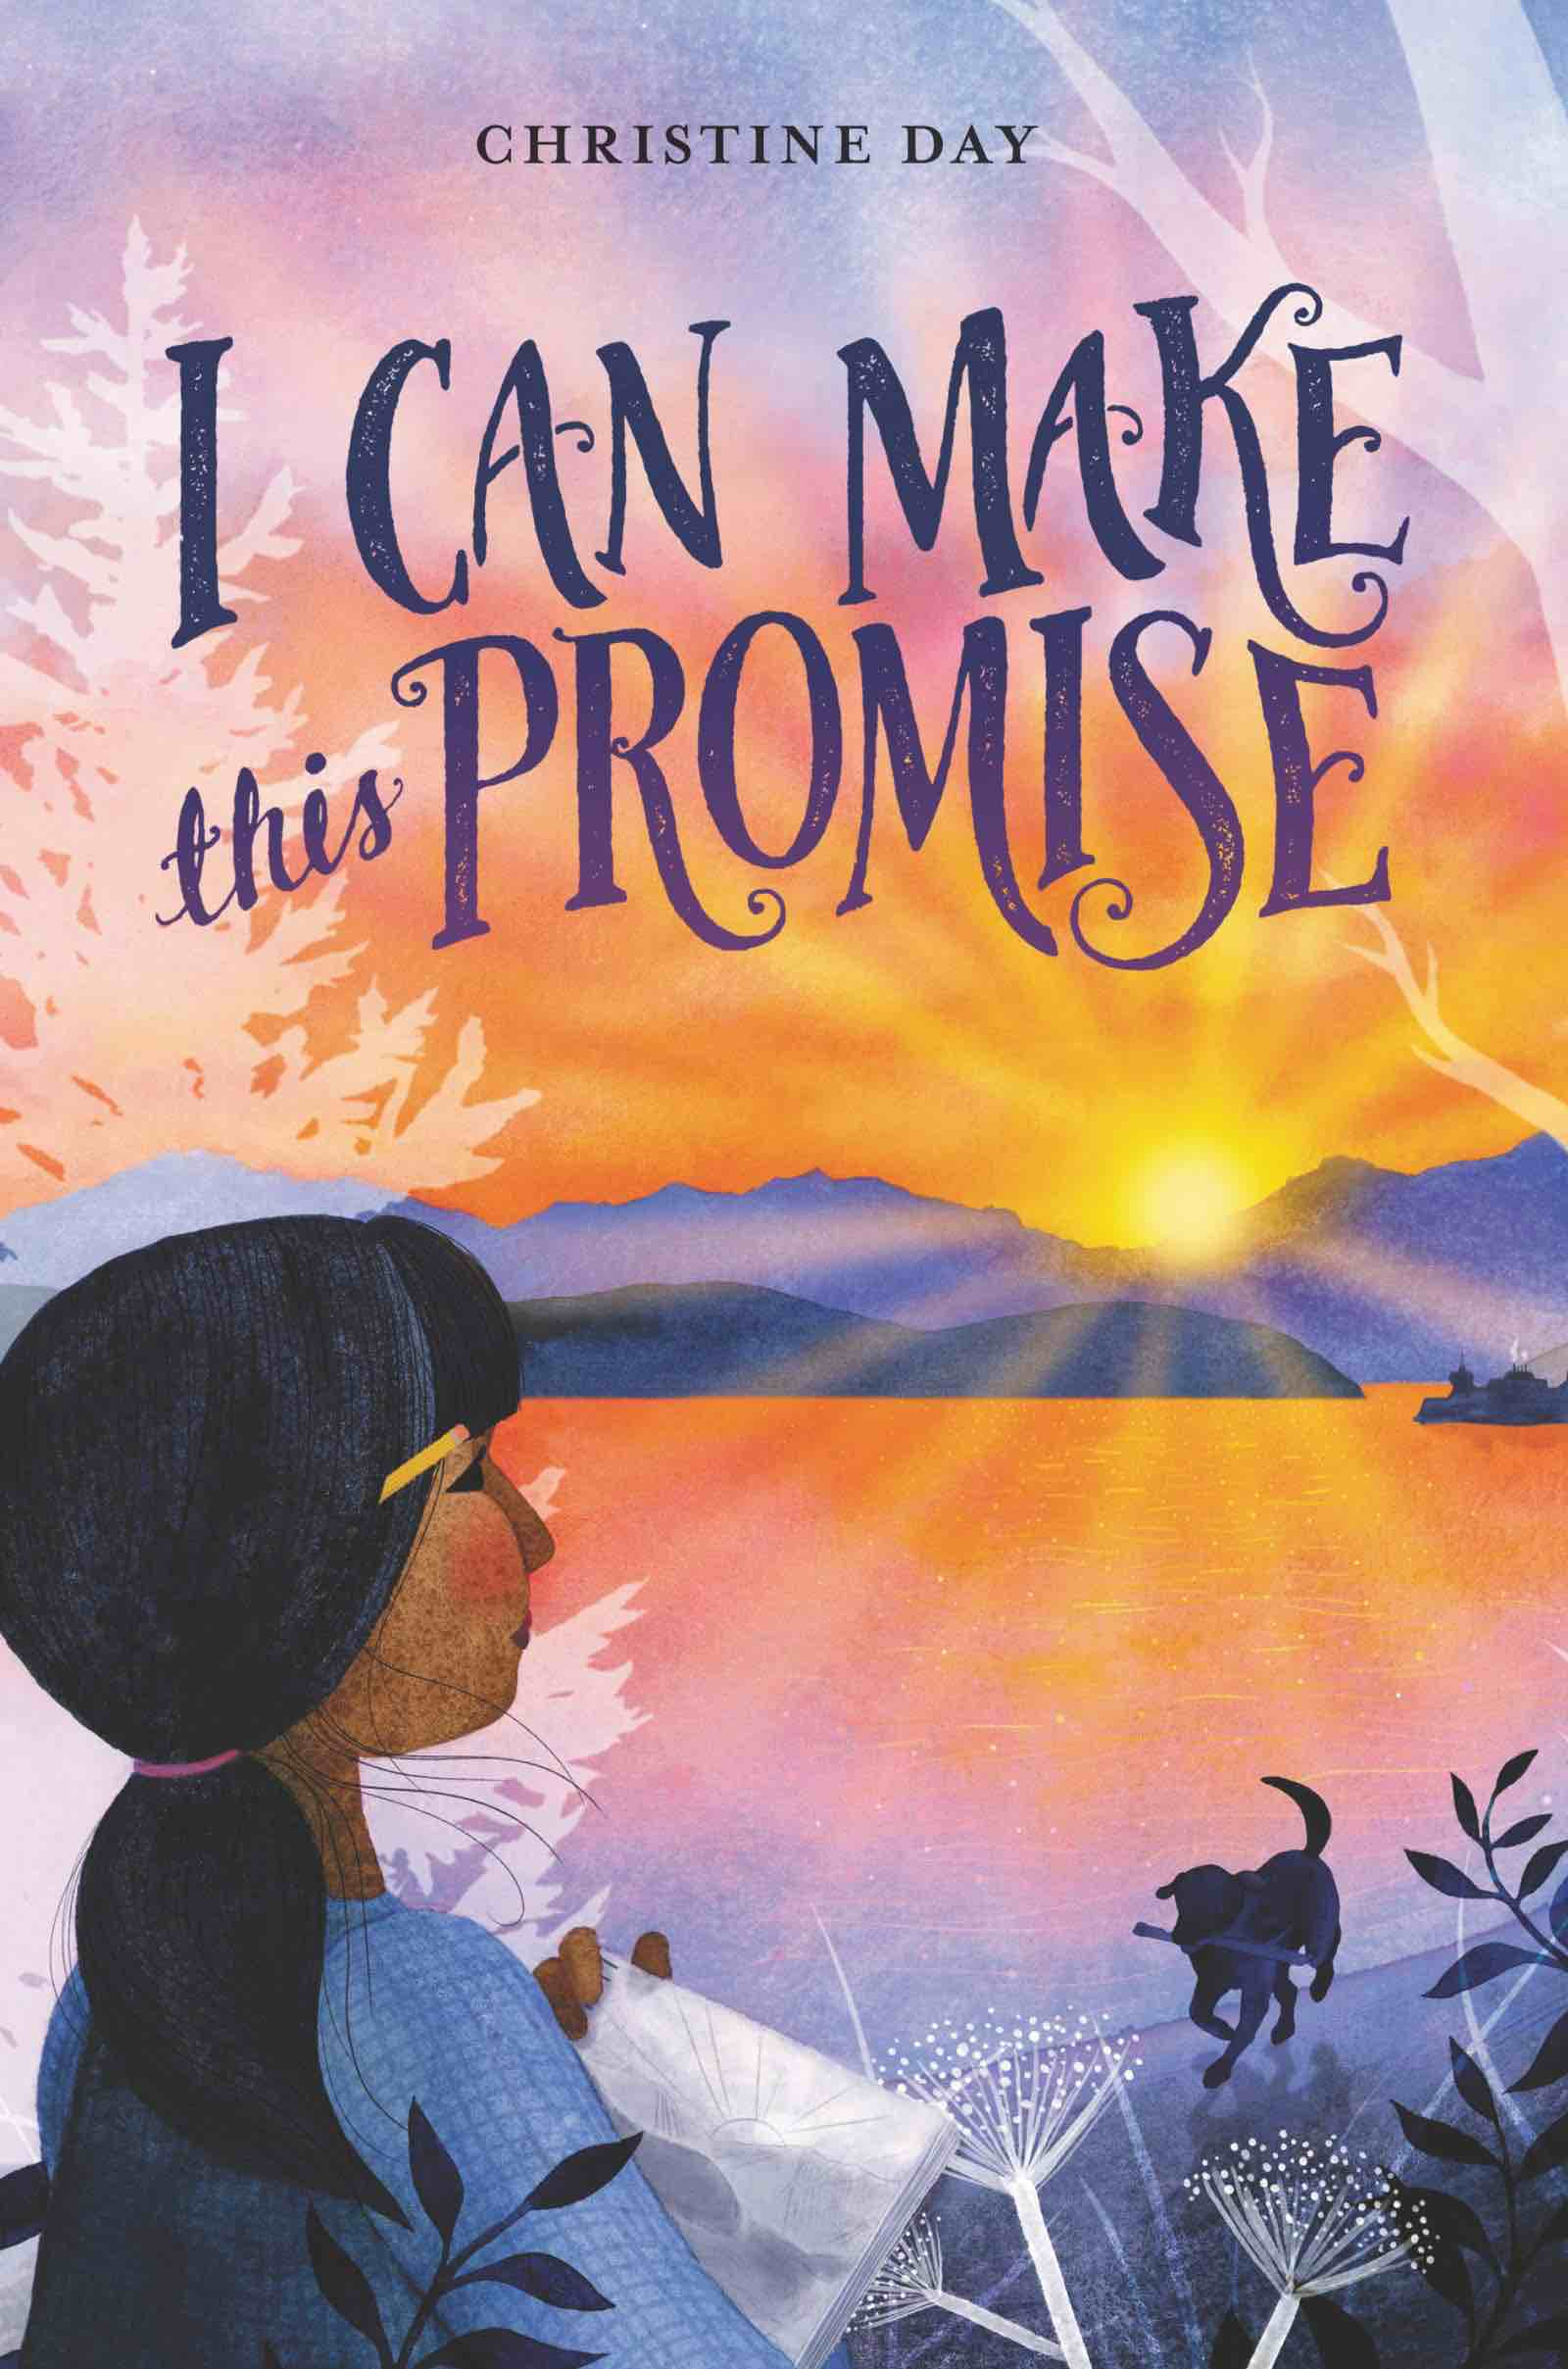 I Can Make This Promise Christine Day